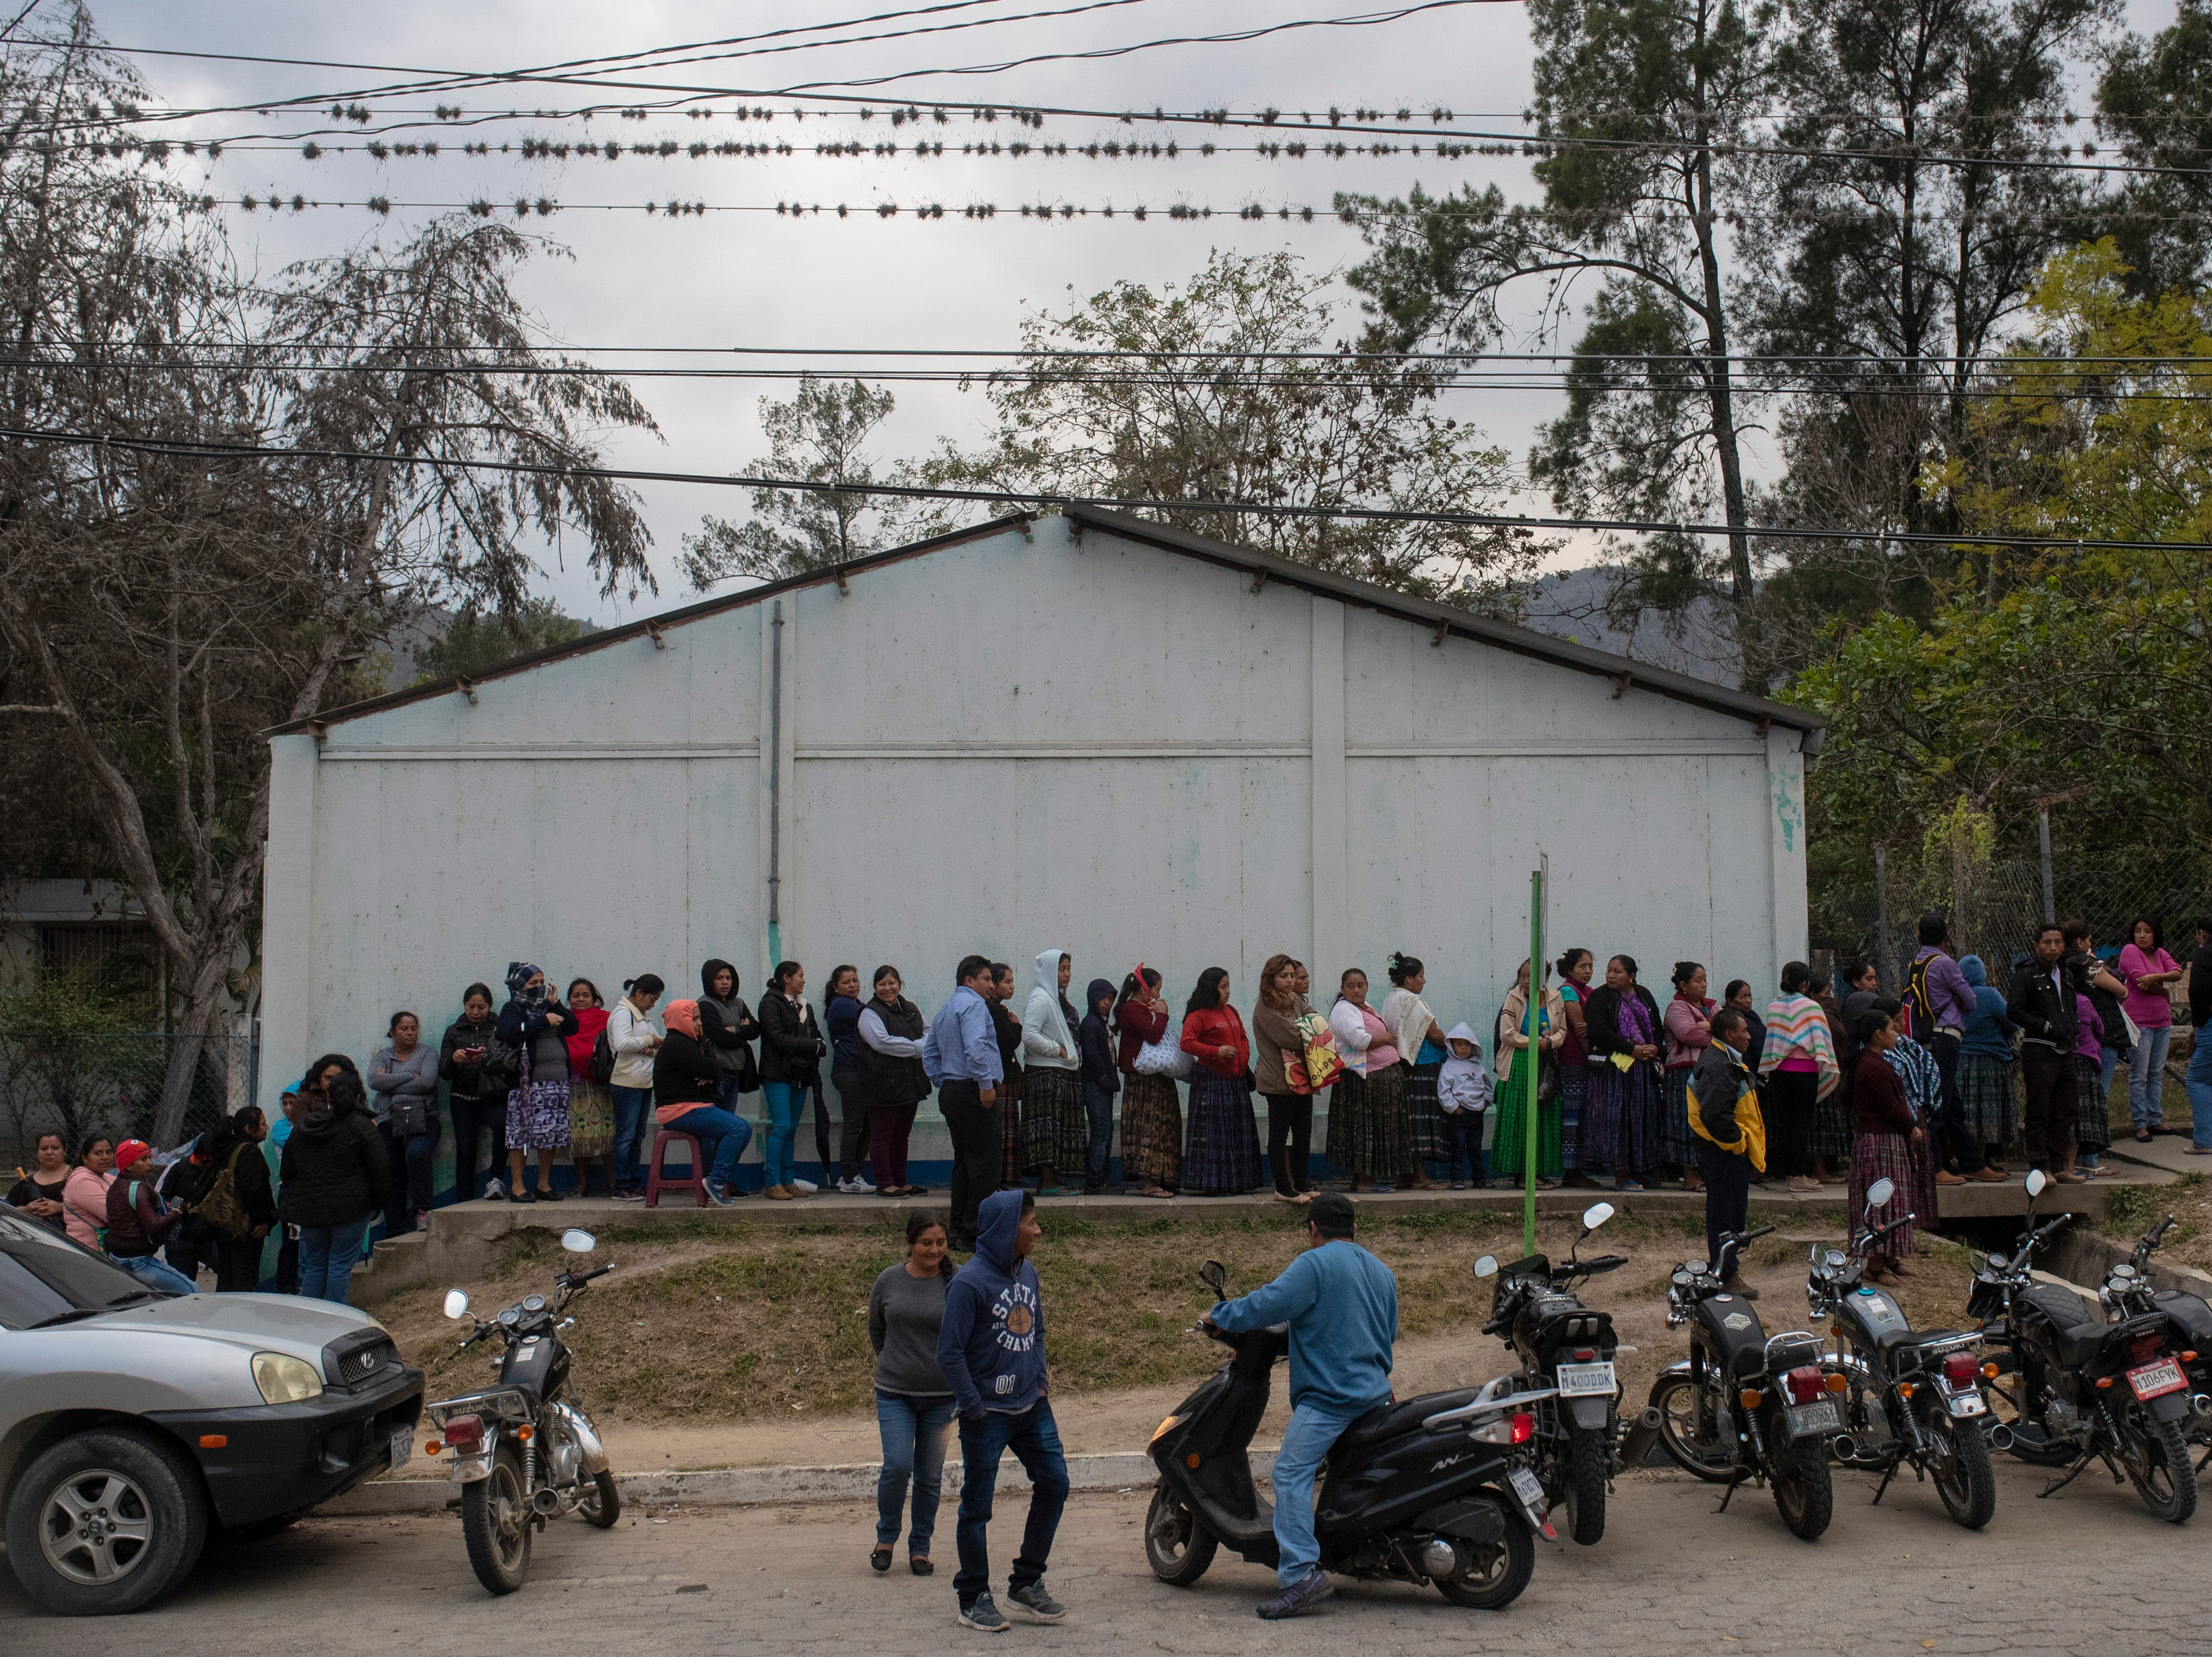 Over a thousand people wait in line to be seen by the Children of the Americas medical mission group at the Hospital Nacional de Salamá. Jan 20, 2019